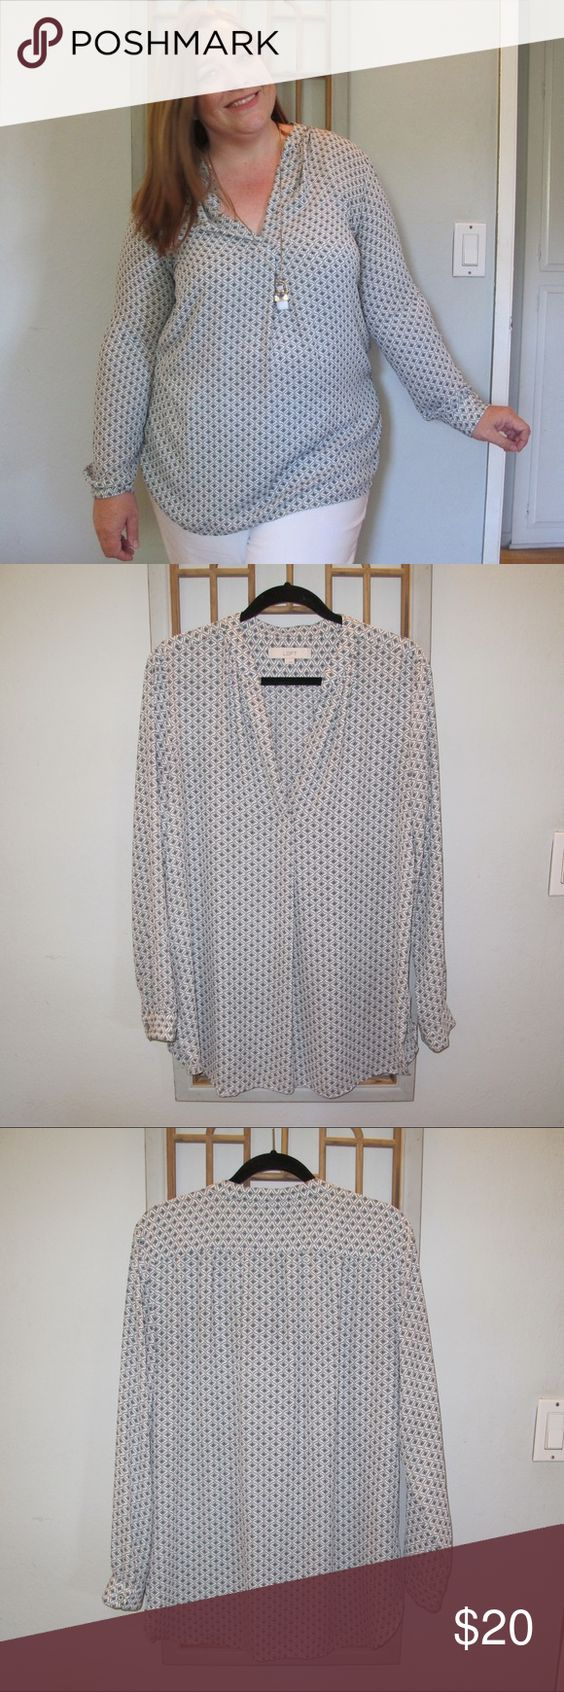 LOFT Blouse LOFT Blouse. White background with blue and black print. Long sleeves. Pull on styling. LOFT Tops